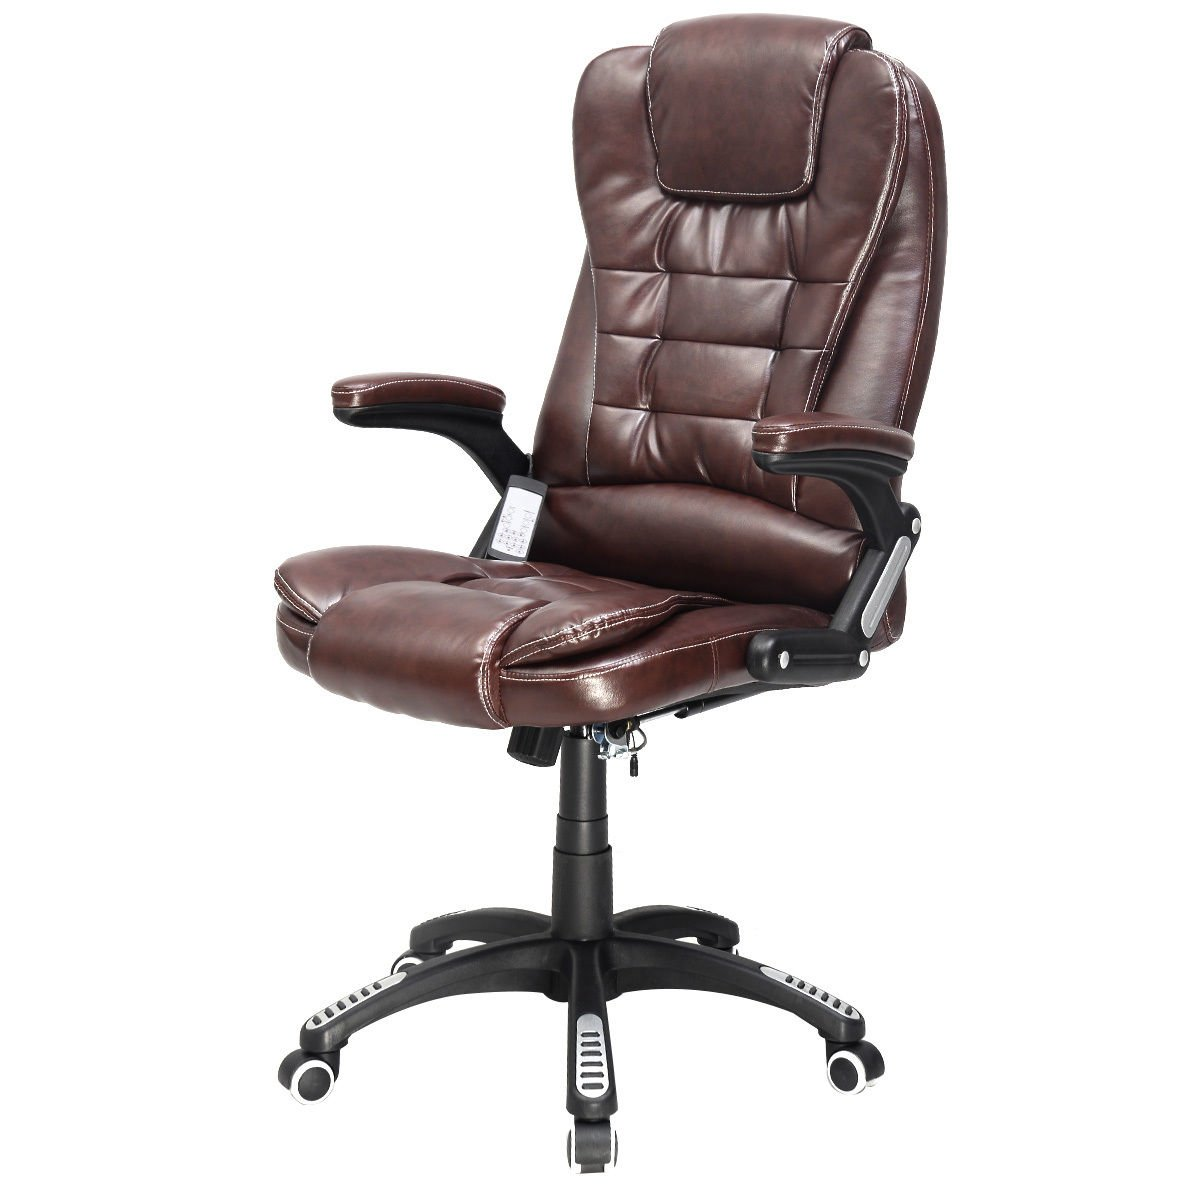 Massage Chair Full Body Executive Ergonomic Computer Desk Home Office- Brown by Tamsun